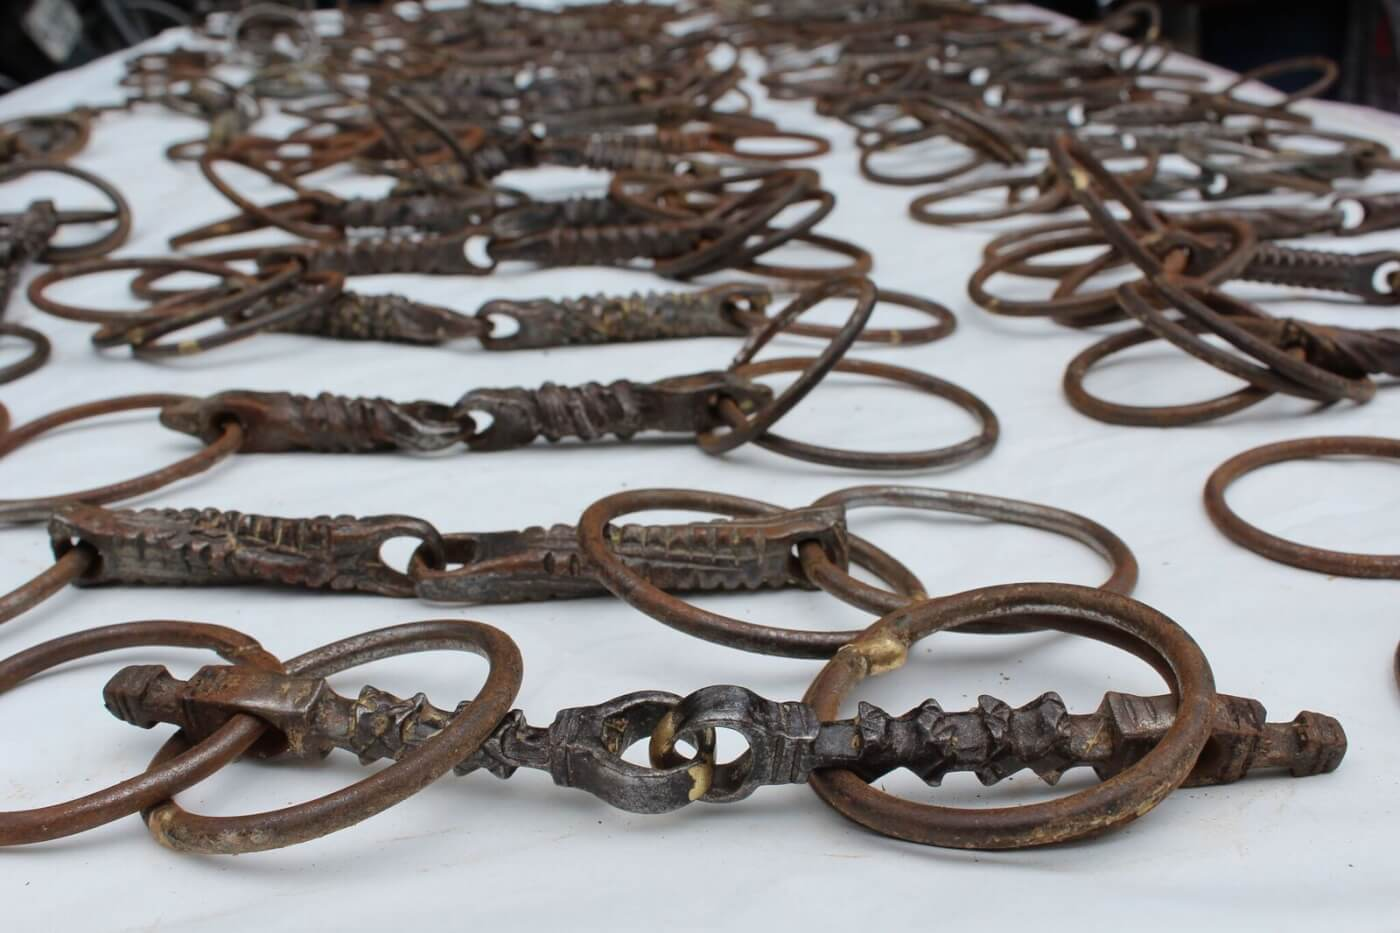 Delhi Police and PETA India Display Over 50 Seized Spiked Bits Used